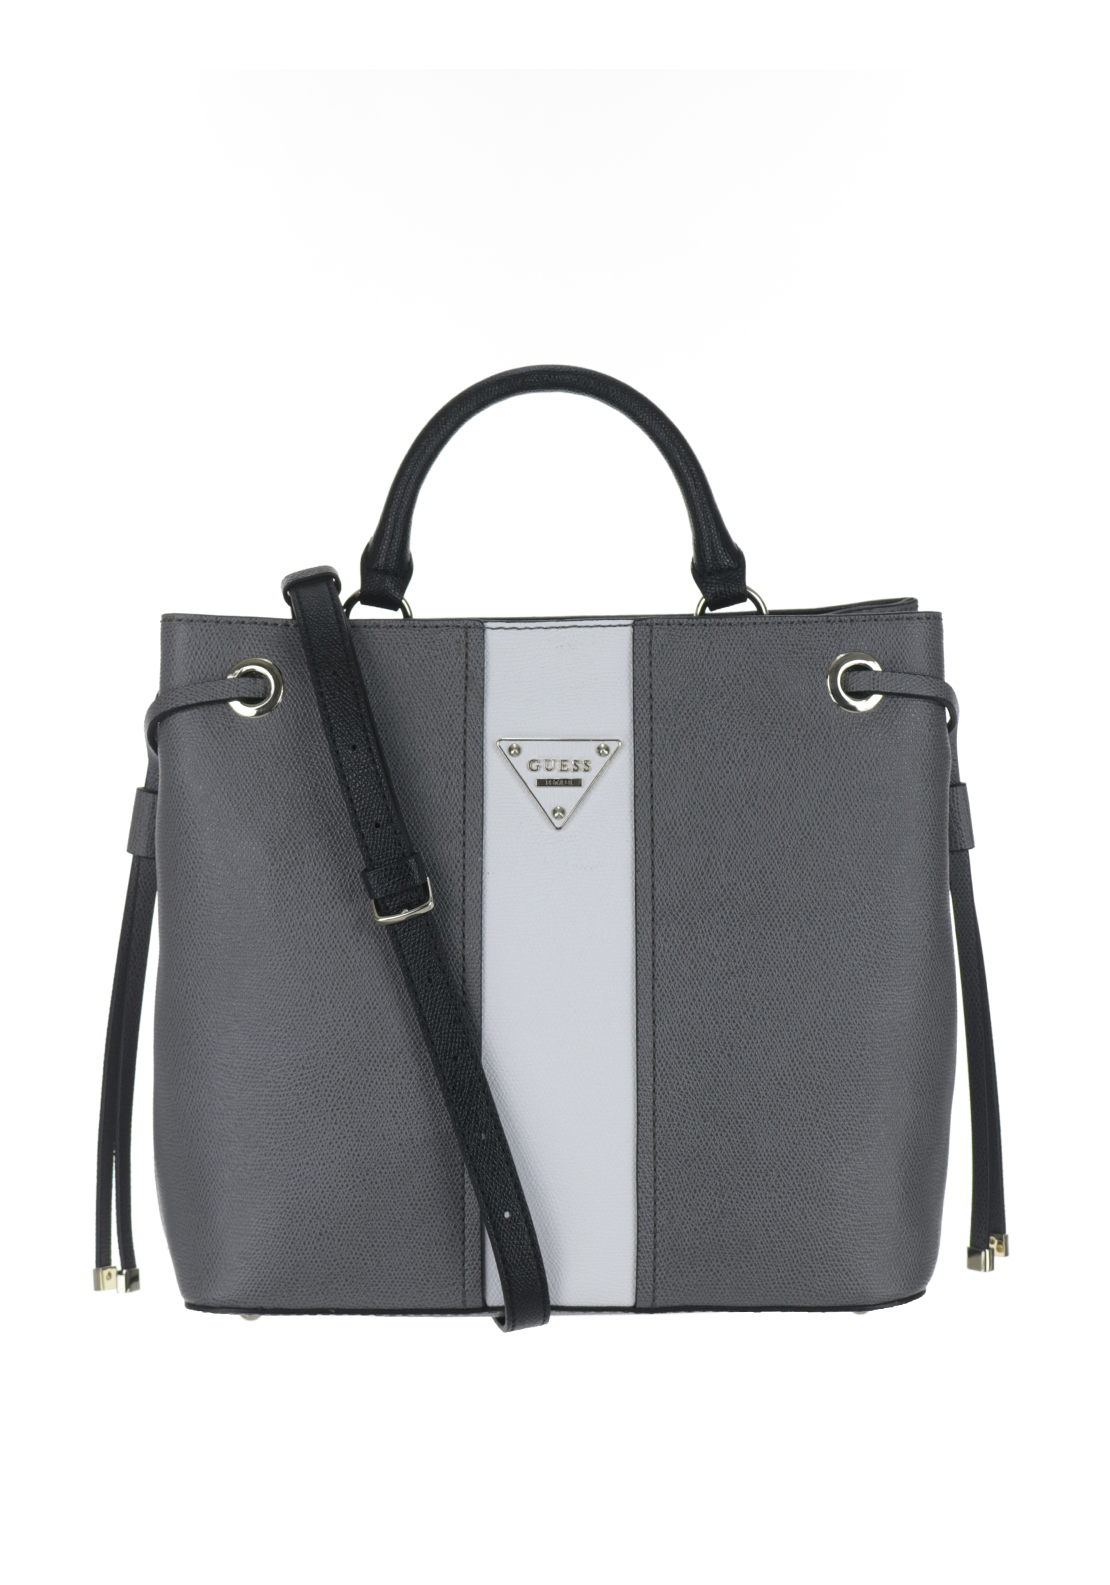 Guess Cooper Tote Shopper Bag, Grey